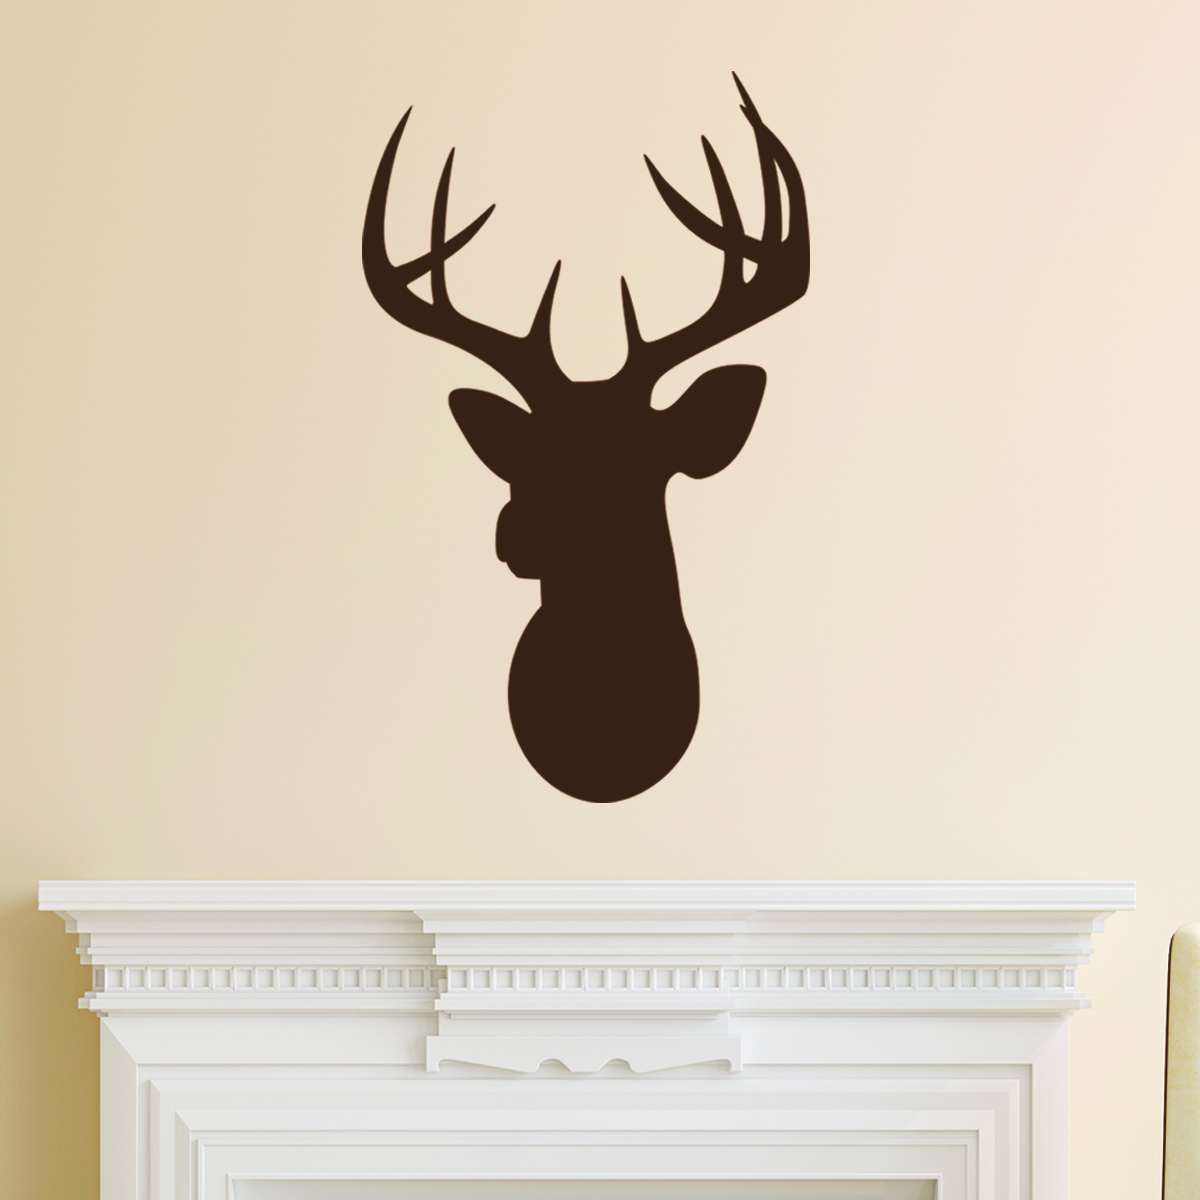 Wall Art Of Deer : Deer head silhouette wall quotes art decal